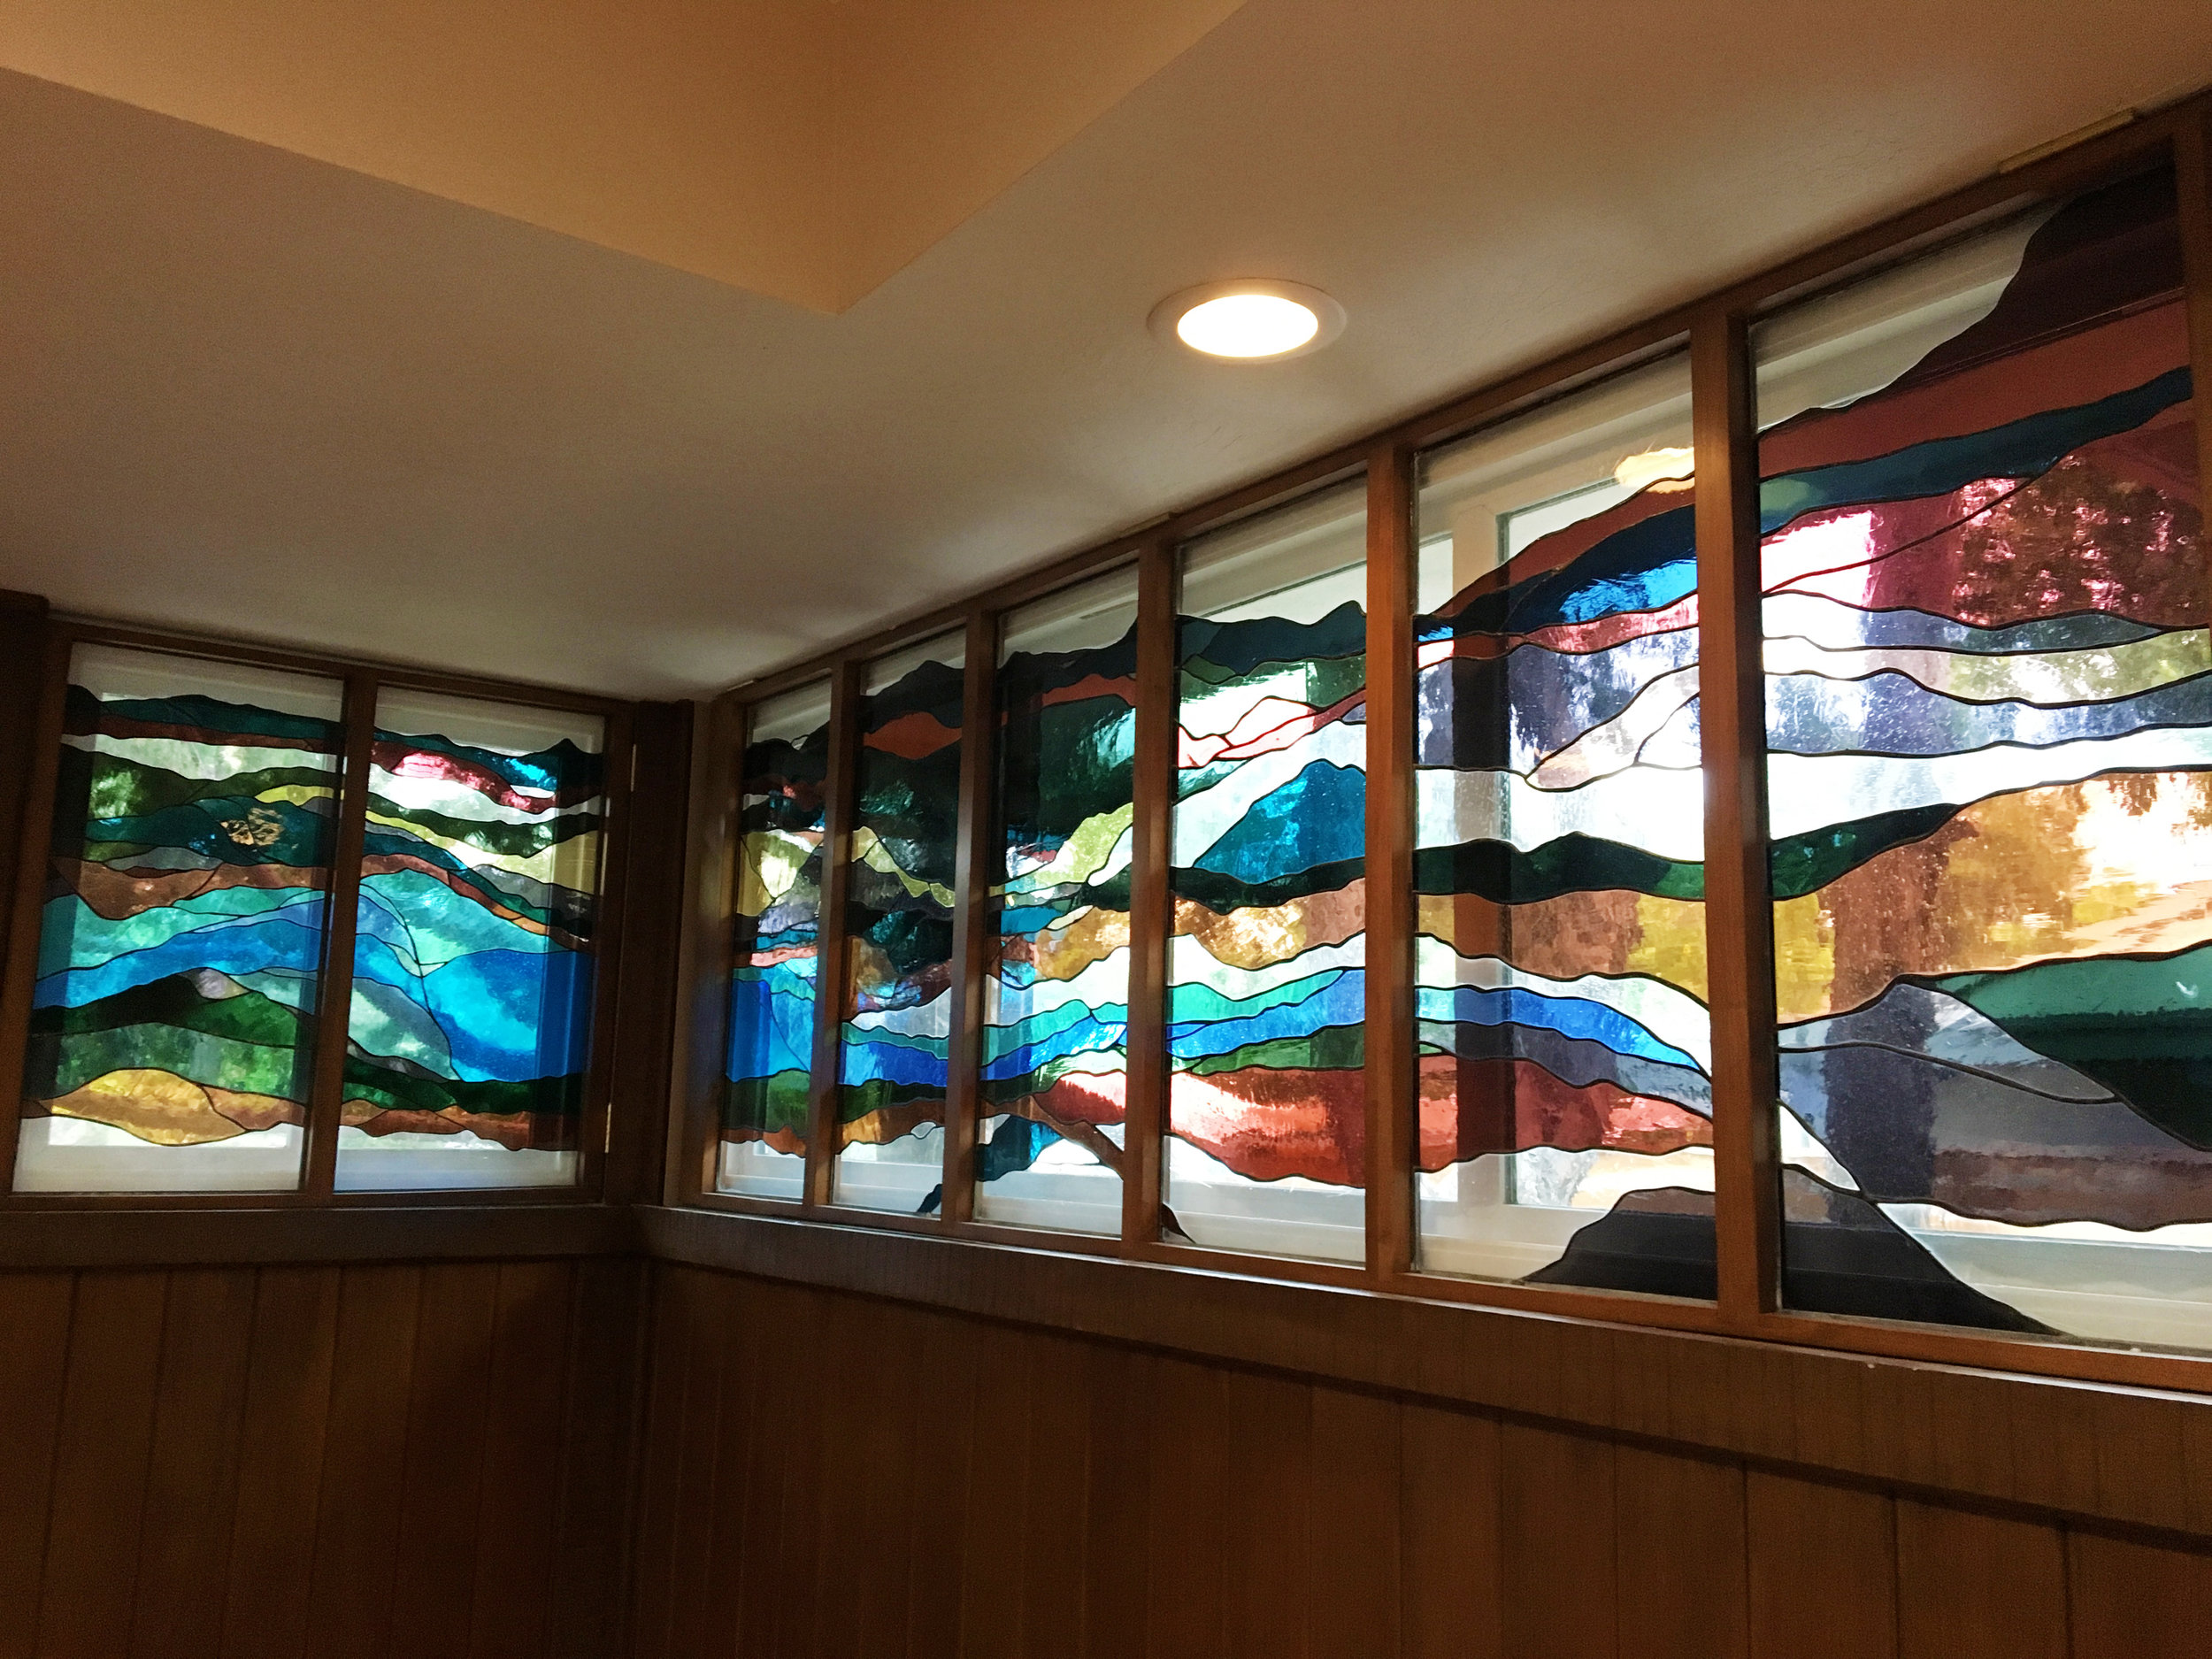 claremont-presbyterian-church-campus-tour-chapel-stained-glass.jpg